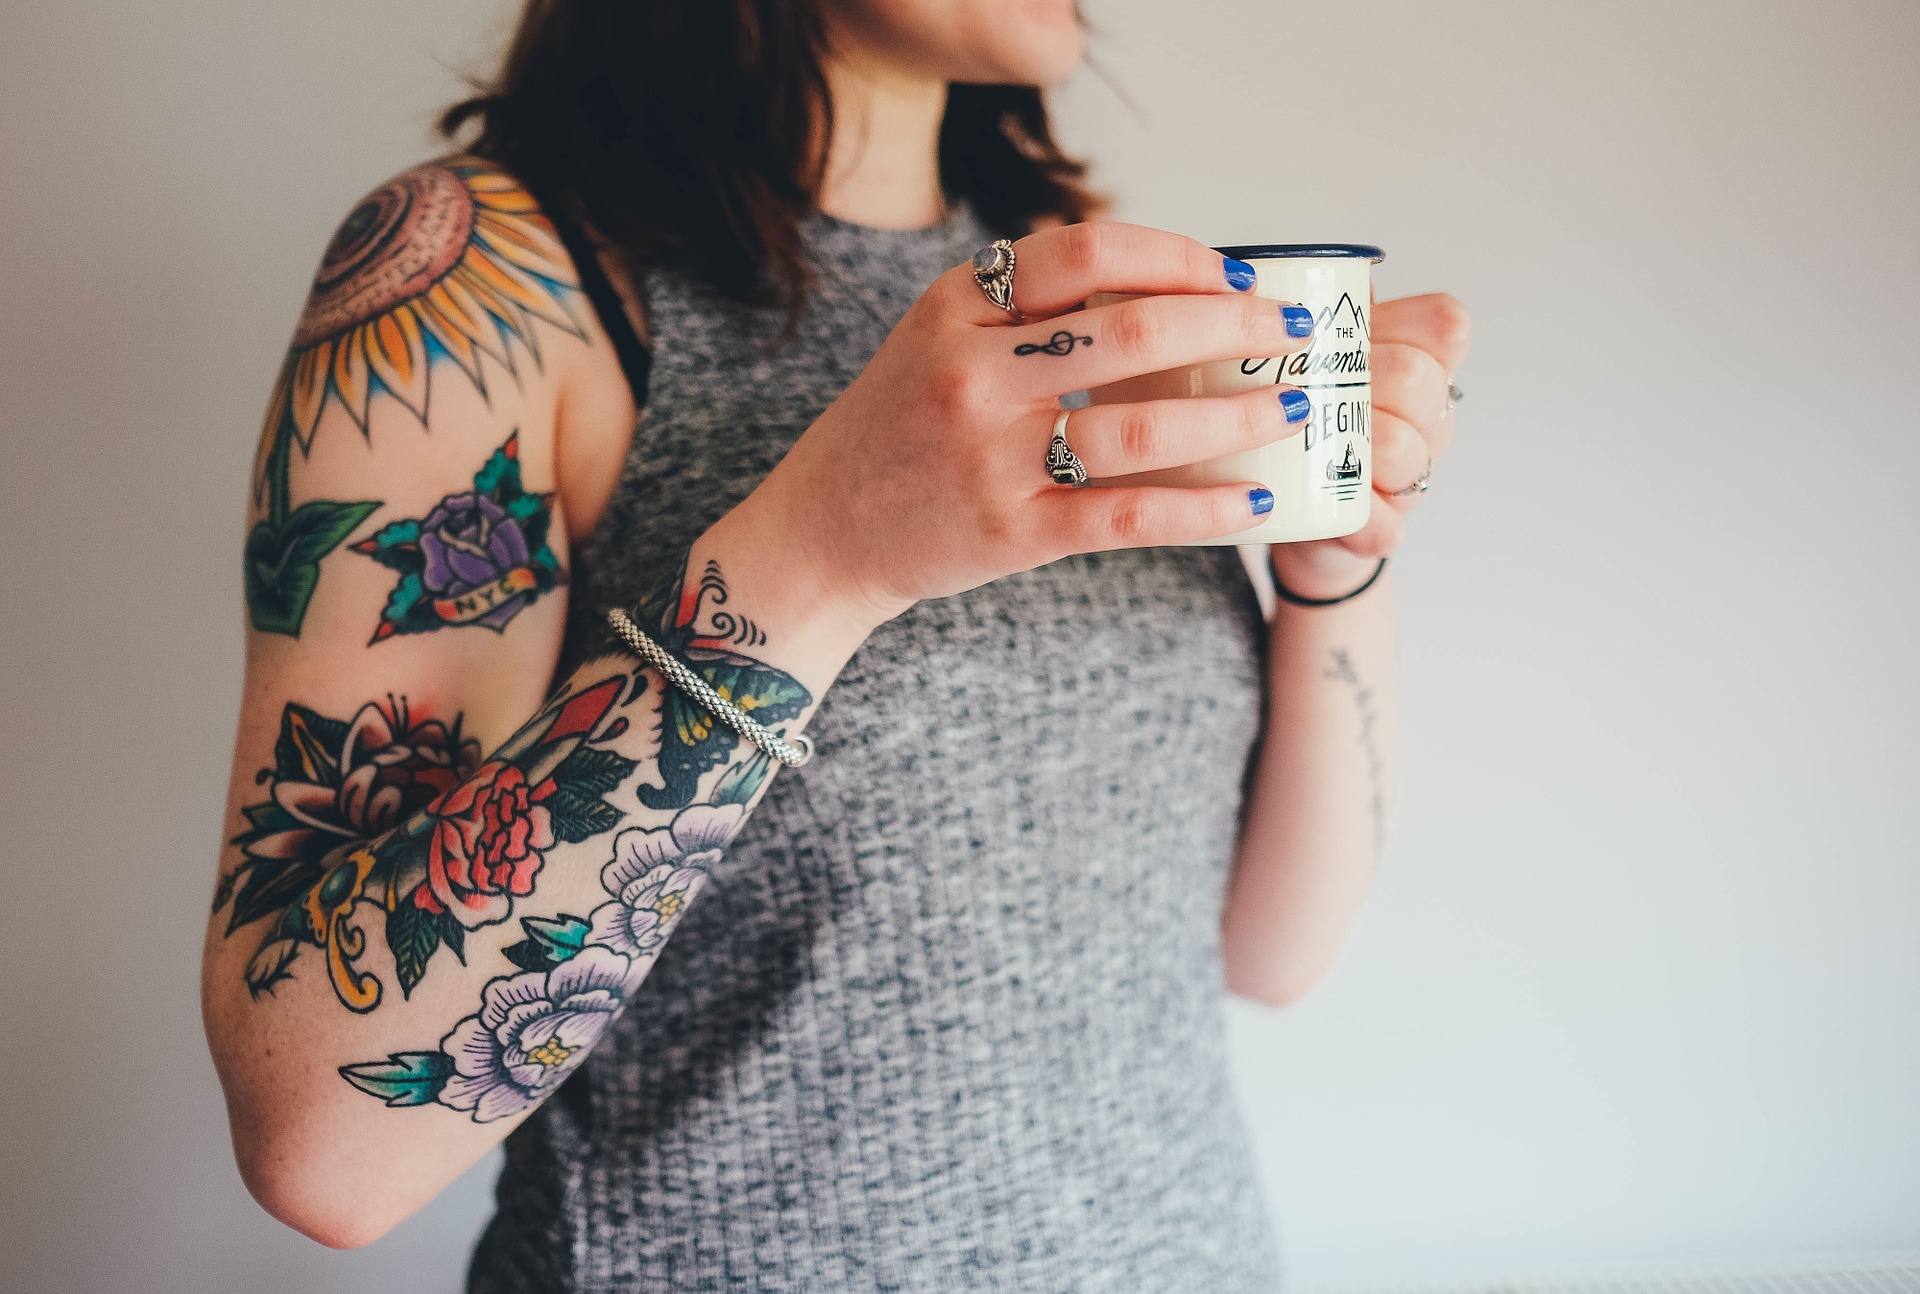 Free download high resolution image - free image free photo free stock image public domain picture -Beautiful tattooed woman